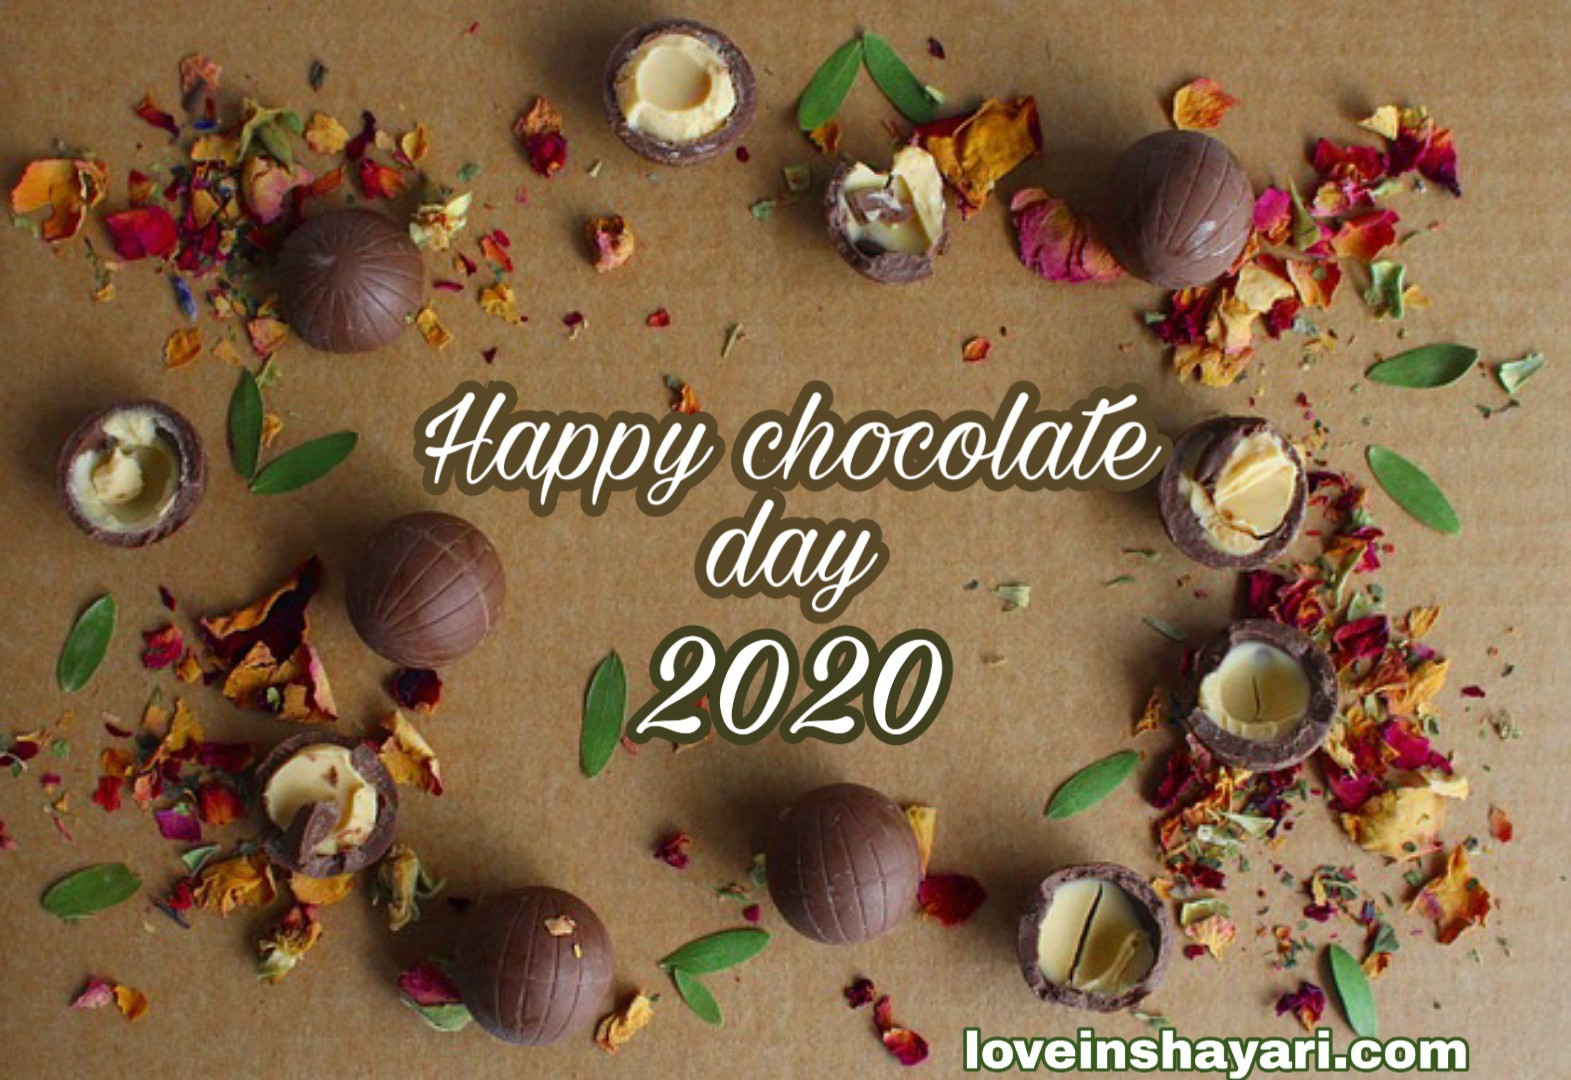 Photo of Happy chocolate day 2020 wishes, shayari, images